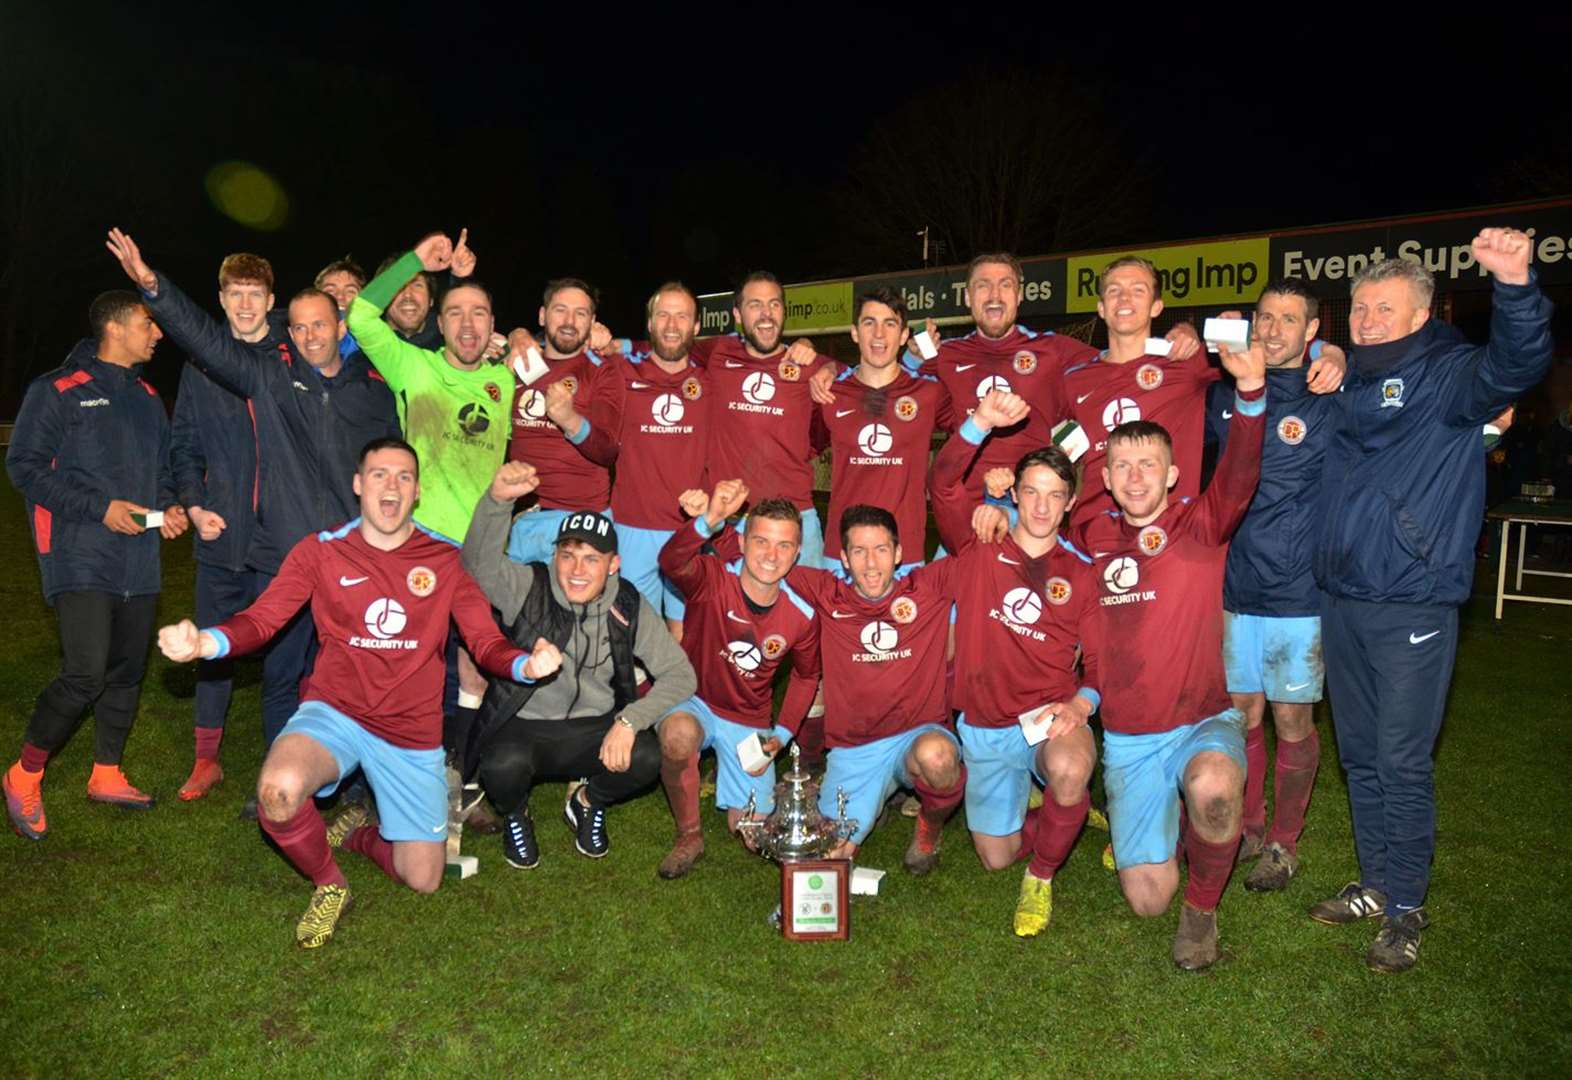 FOOTBALL: Clarets crowned county champions after shoot-out success